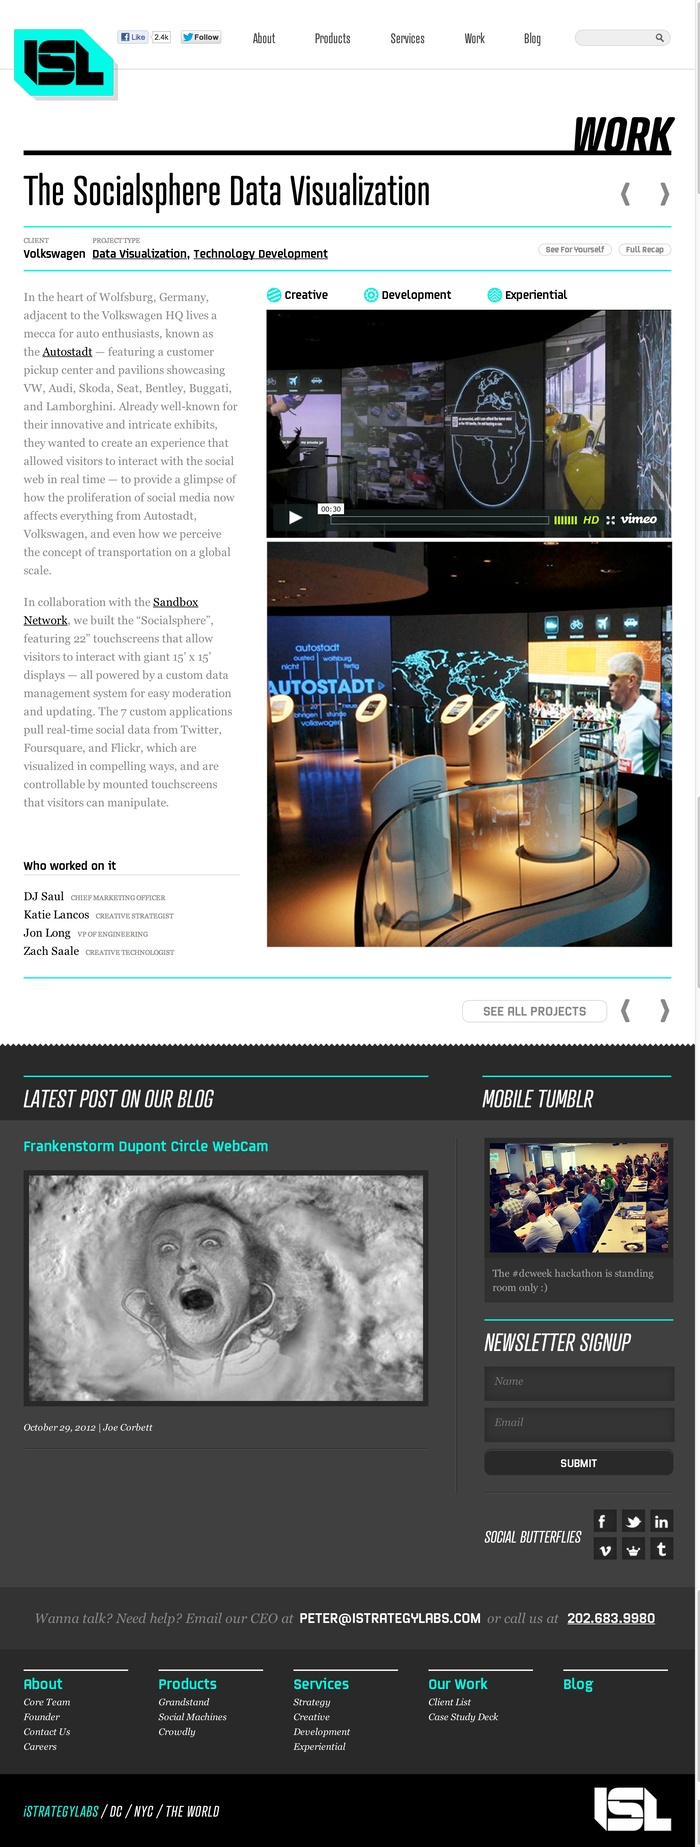 iStrategyLabs website 2